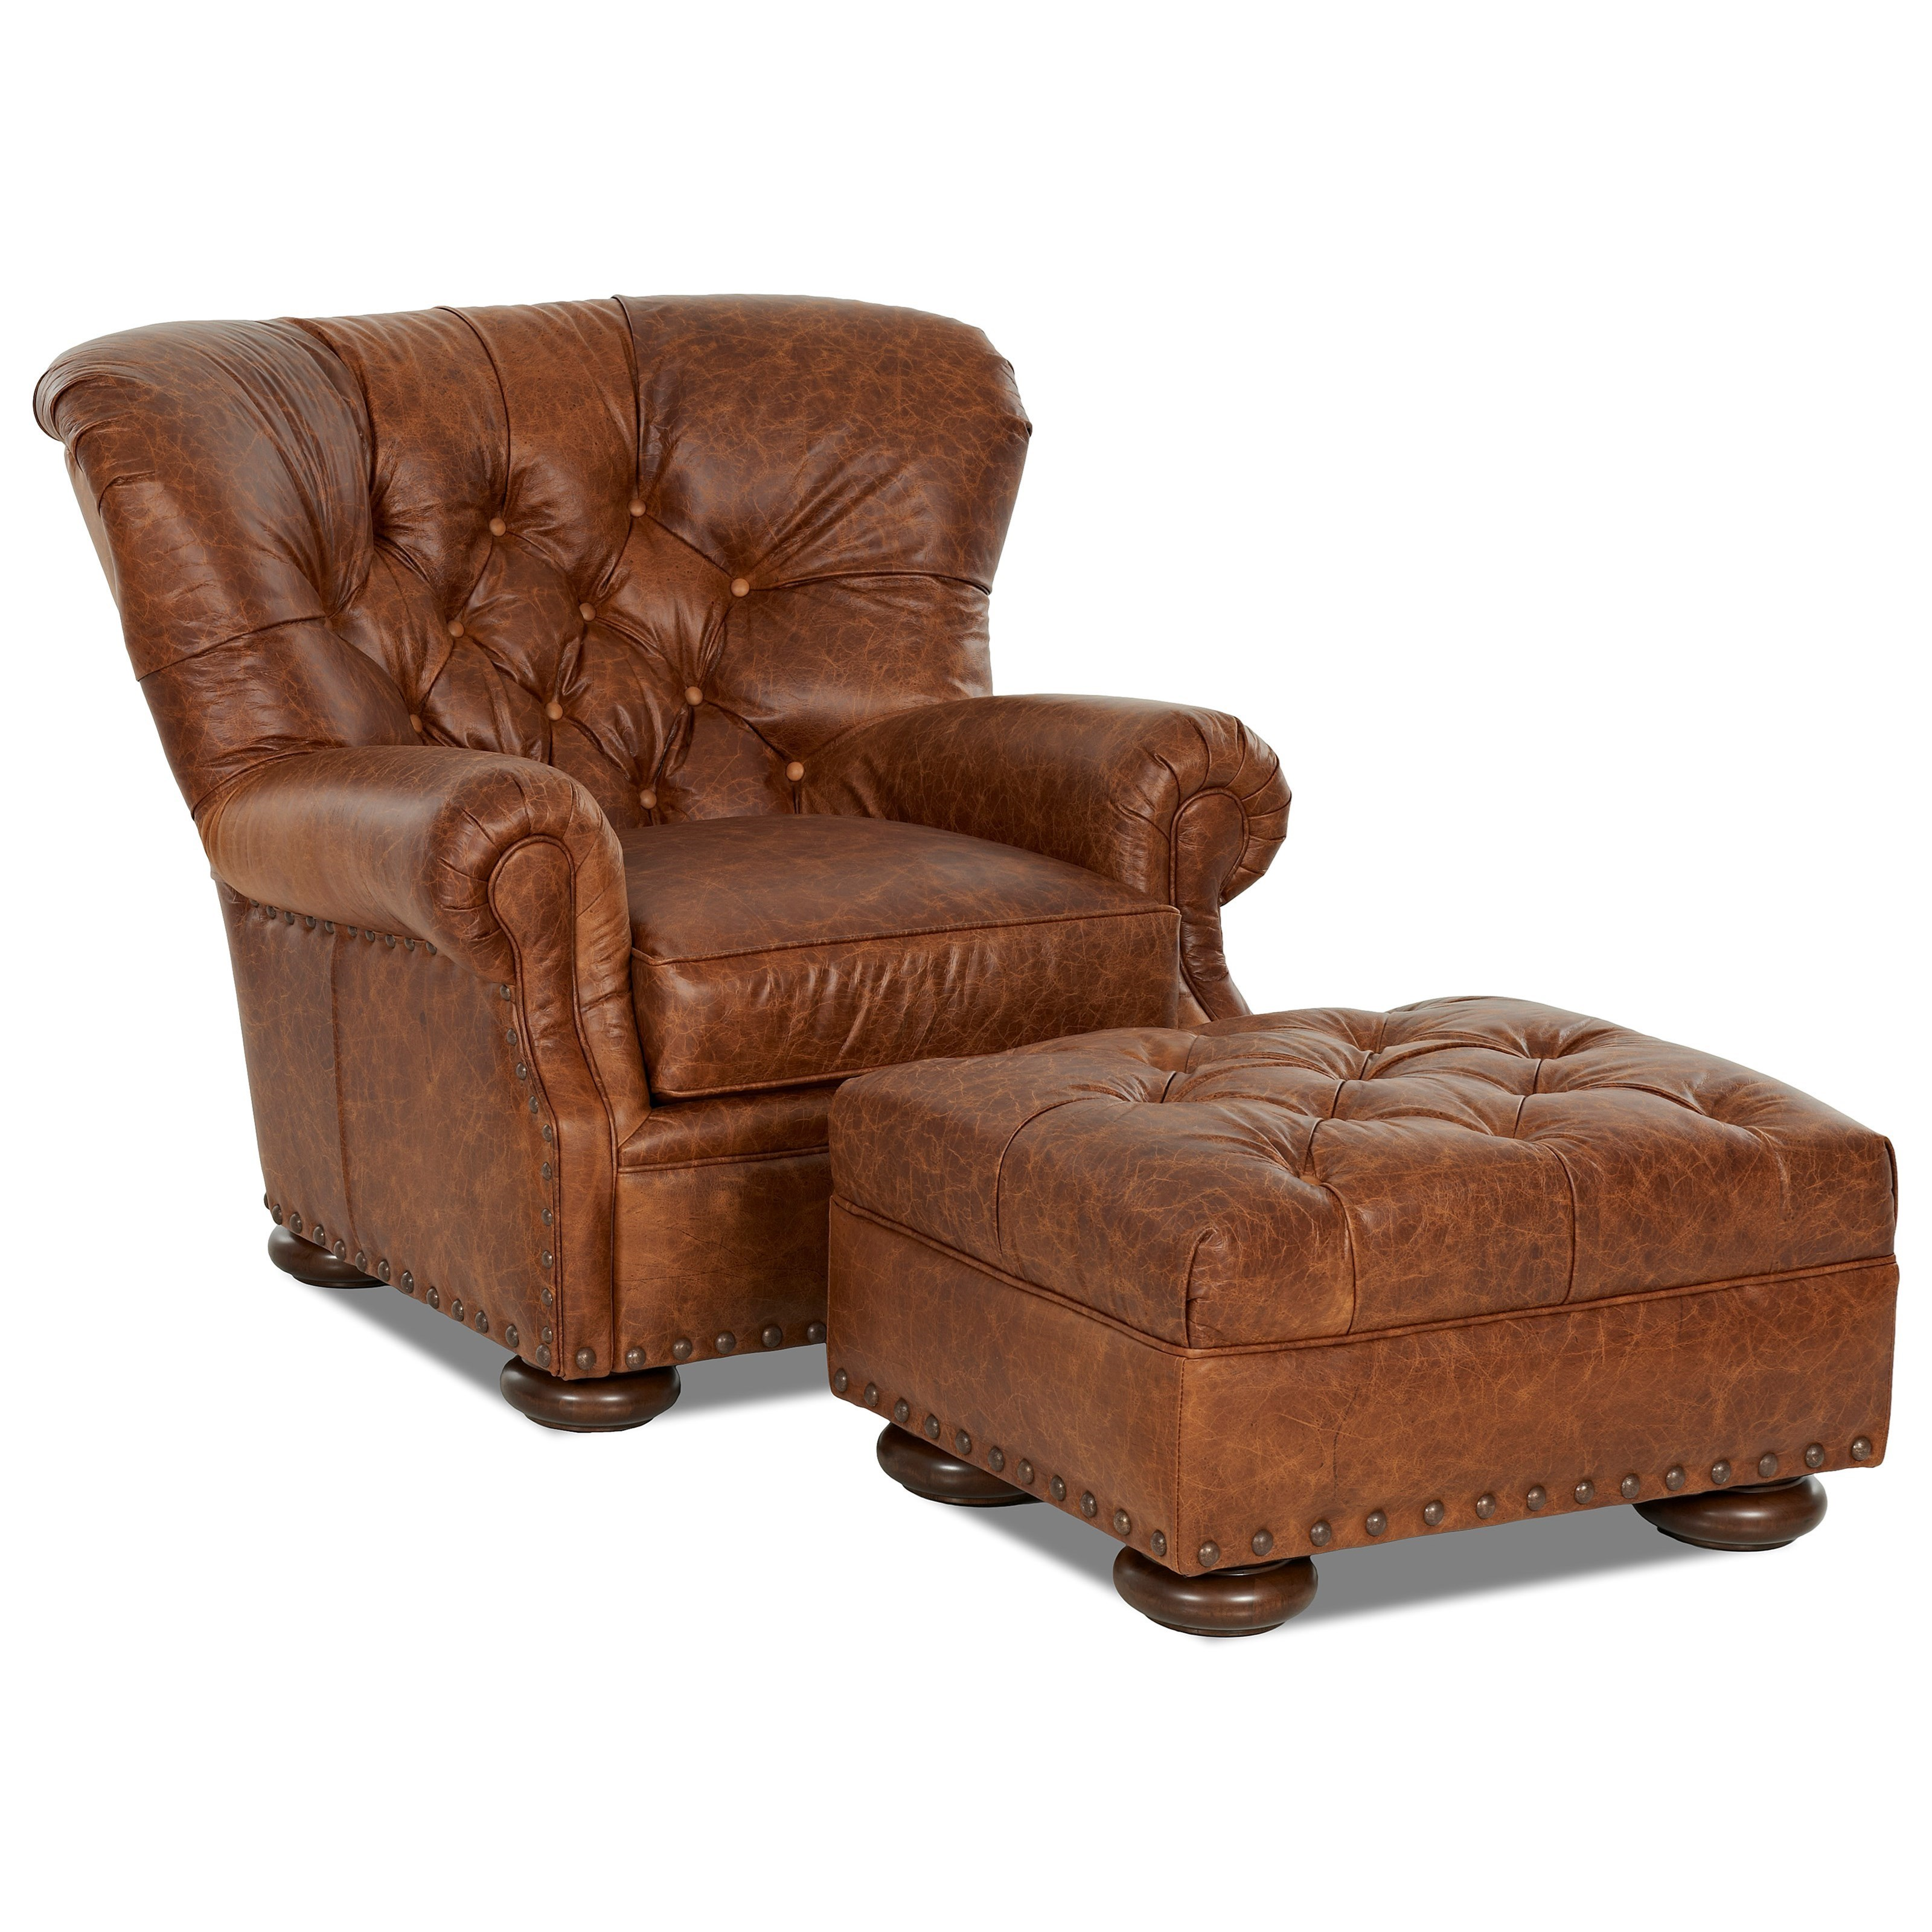 Tufted leather chair and ottoman set by klaussner wolf for Chair and footstool